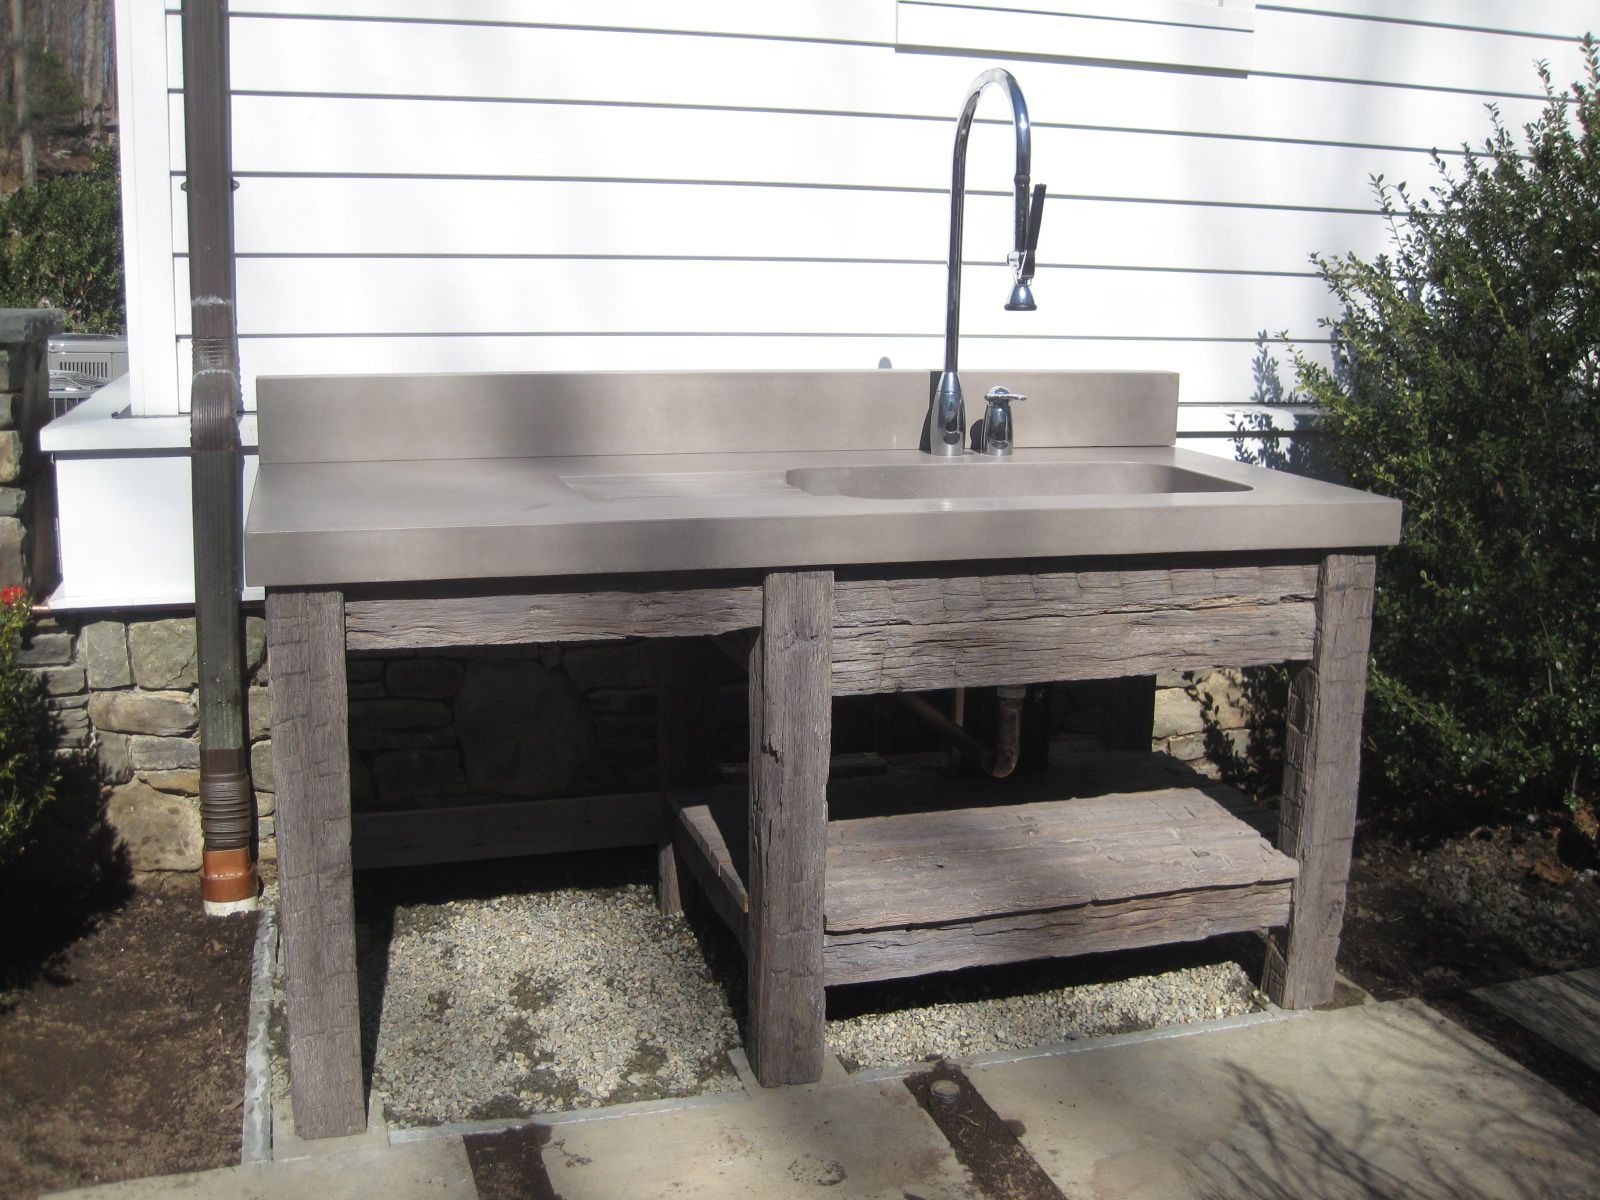 Outdoor Kitchen Sinks Grill For Design Inspiration Bycocoon